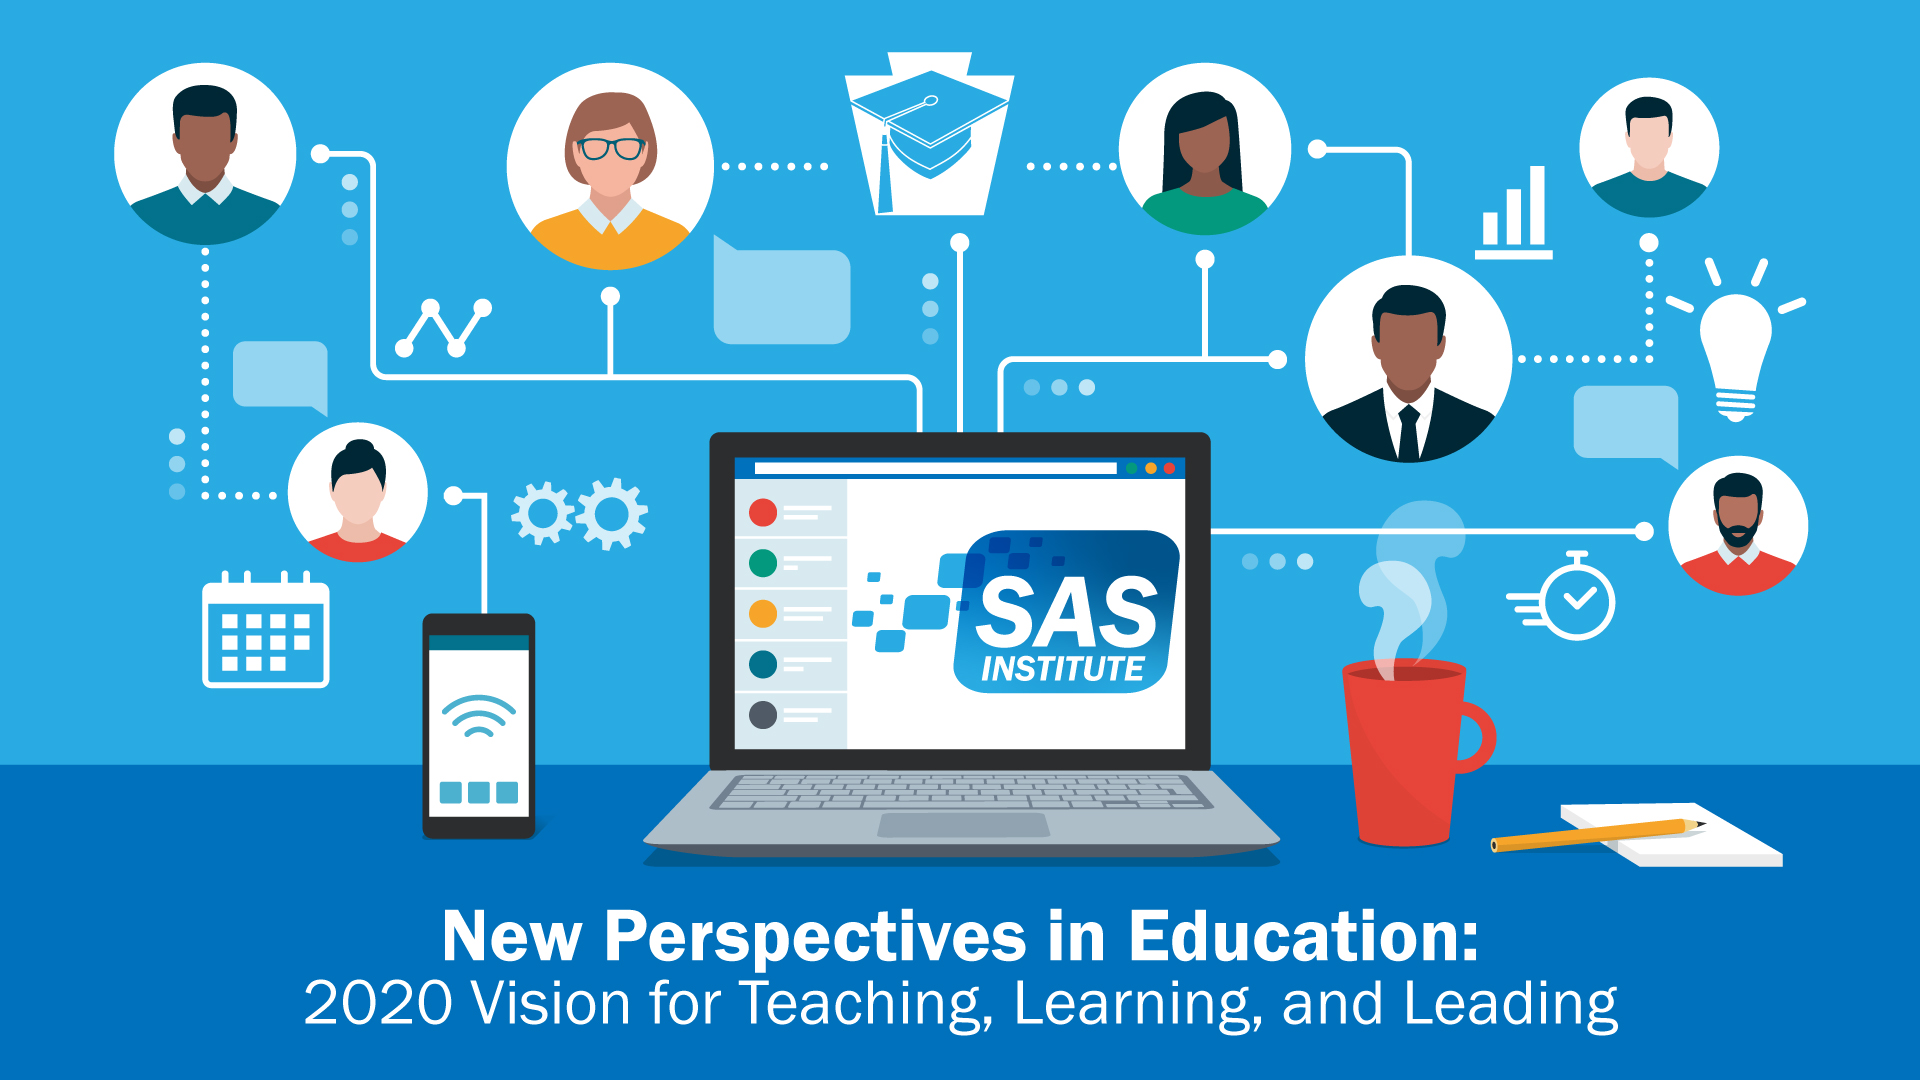 SAS Institute: New Perspectives in Education: 2020 Vision for Teaching, Learning, and Leading December 7 and 8, 2020